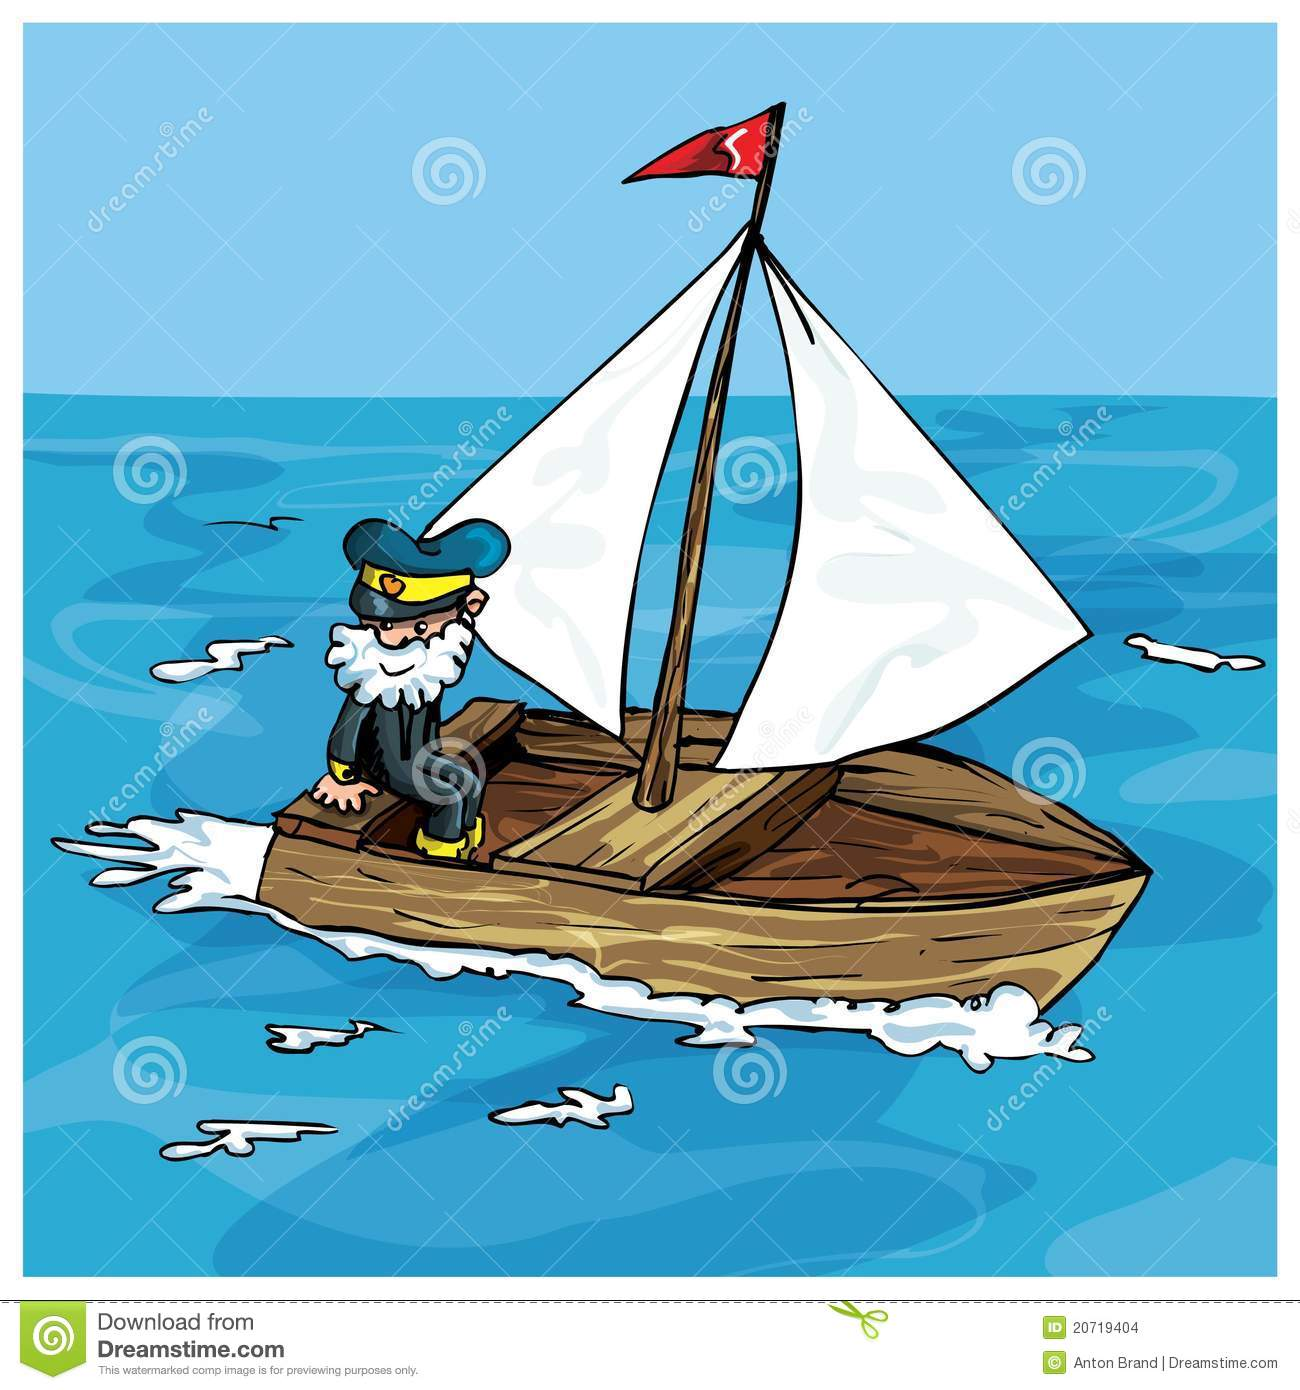 Cartoon Of Man Sailing In A Small Boat Stock Vector - Illustration